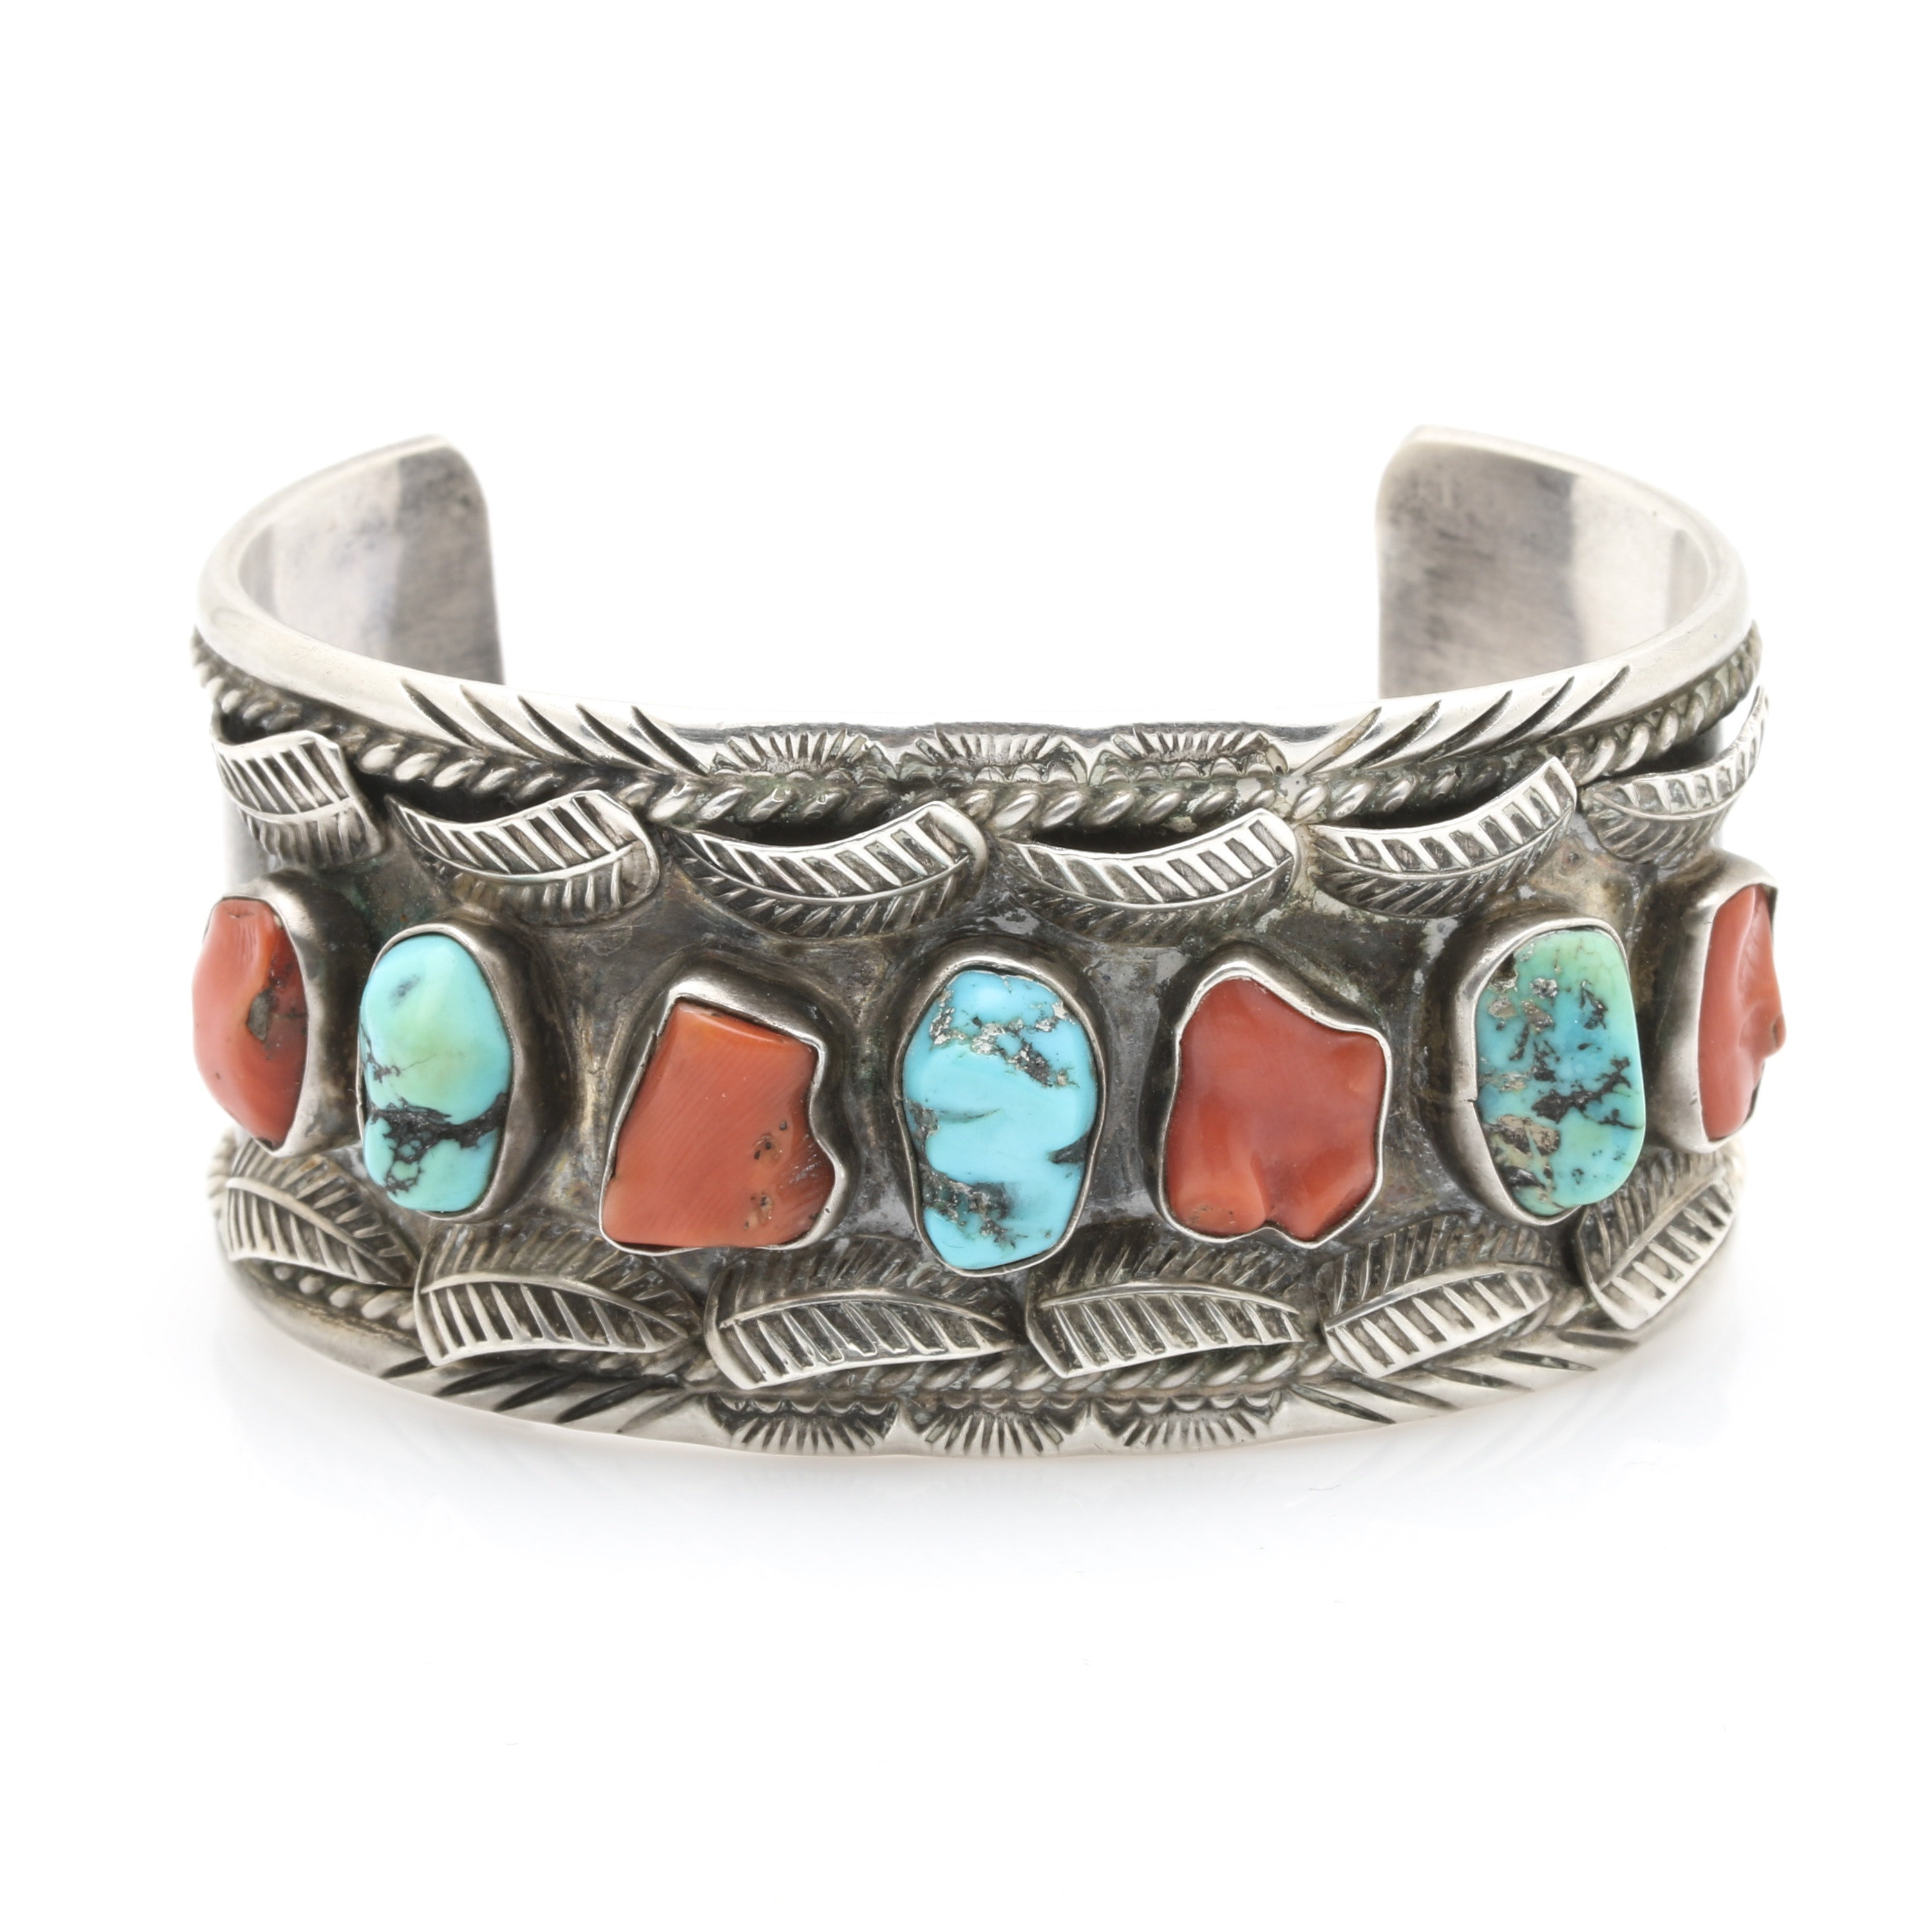 Jerry Roan Navajo Diné Sterling Silver Appliqué Coral and Turquoise Cuff